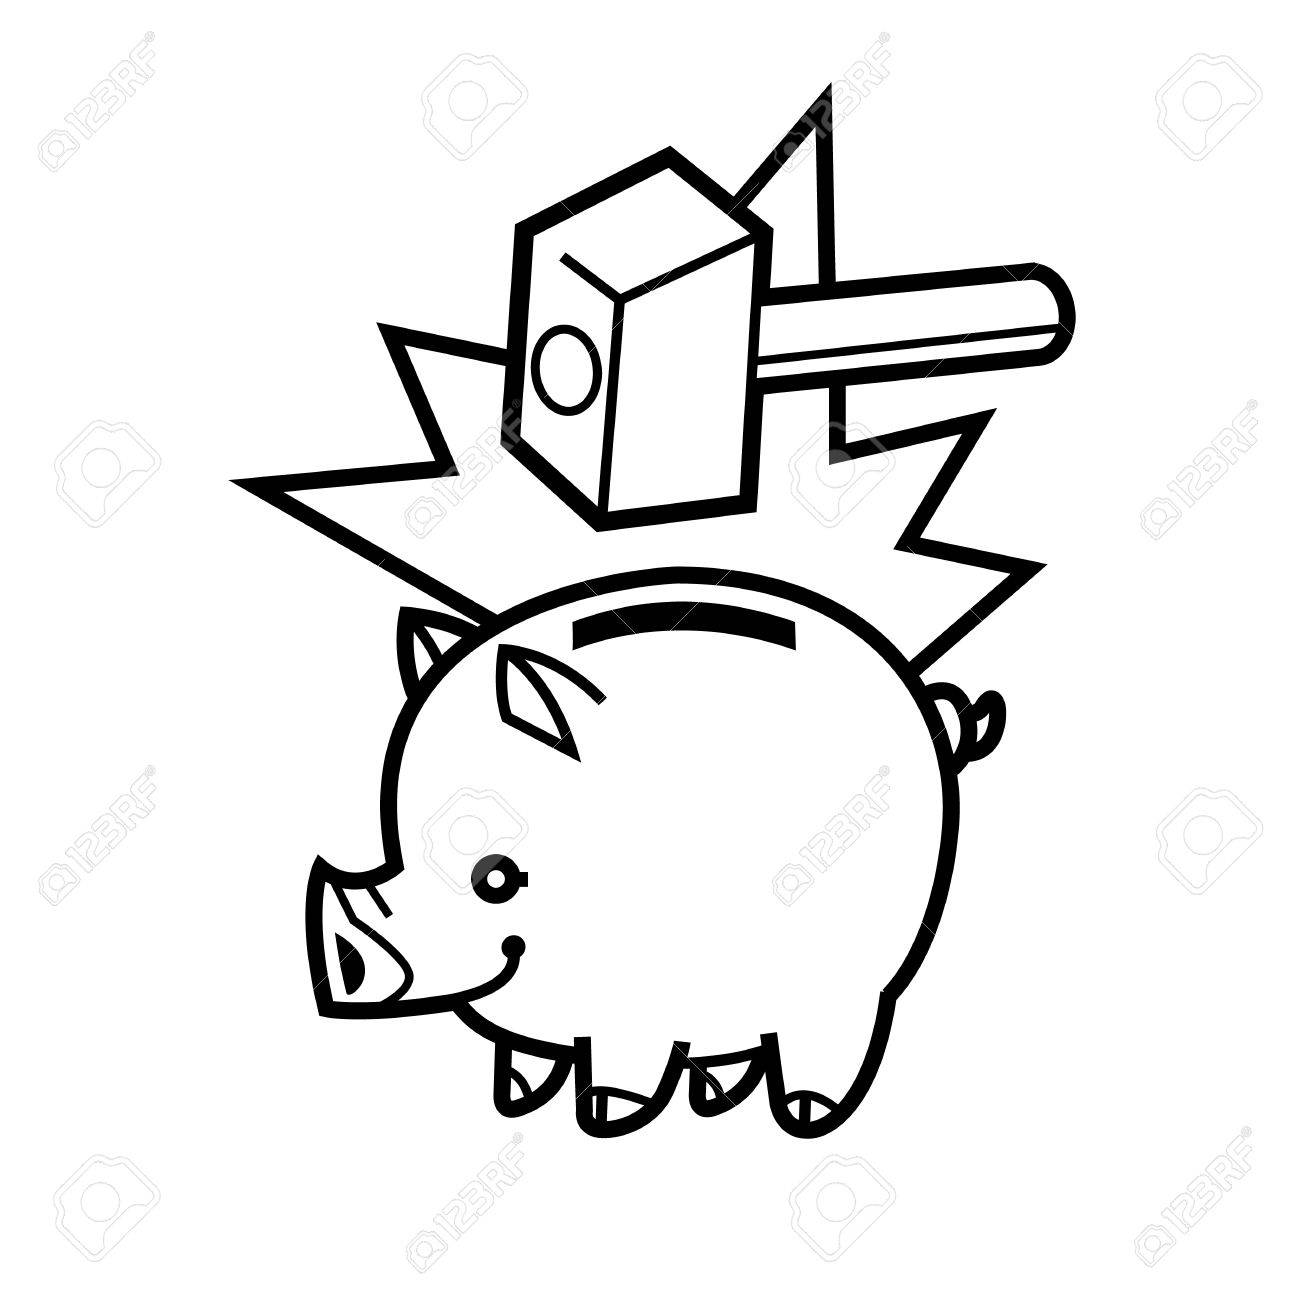 1300x1300 Piggy Bank Symbol Of Wealth Finance And Money Saving And Money